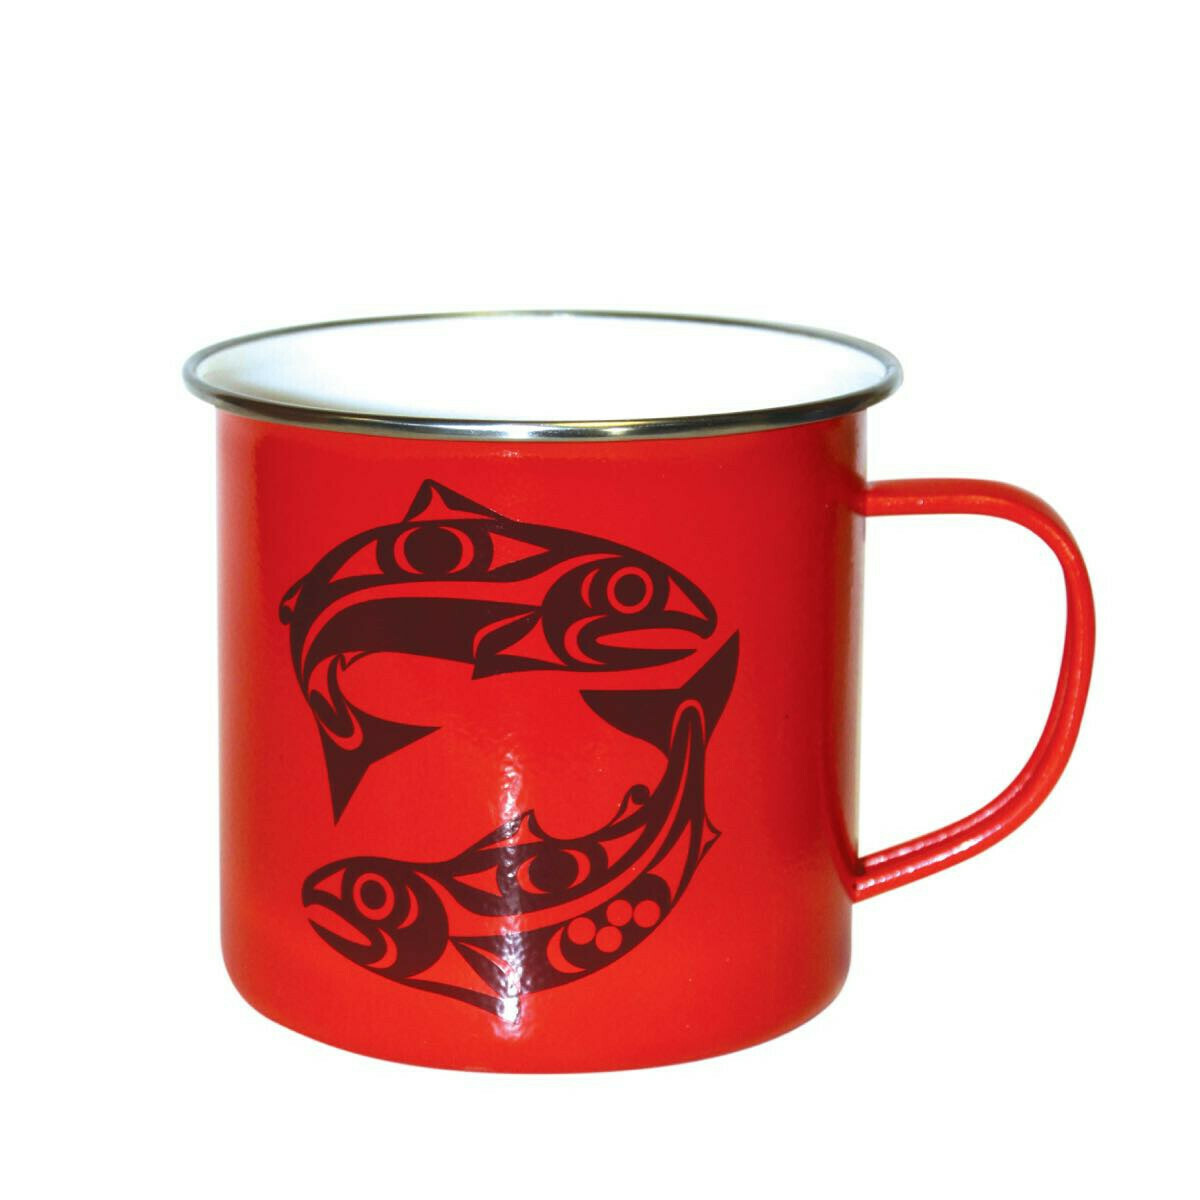 14 OZ SALMON ENAMEL MUG - NATIVE NORTHWEST